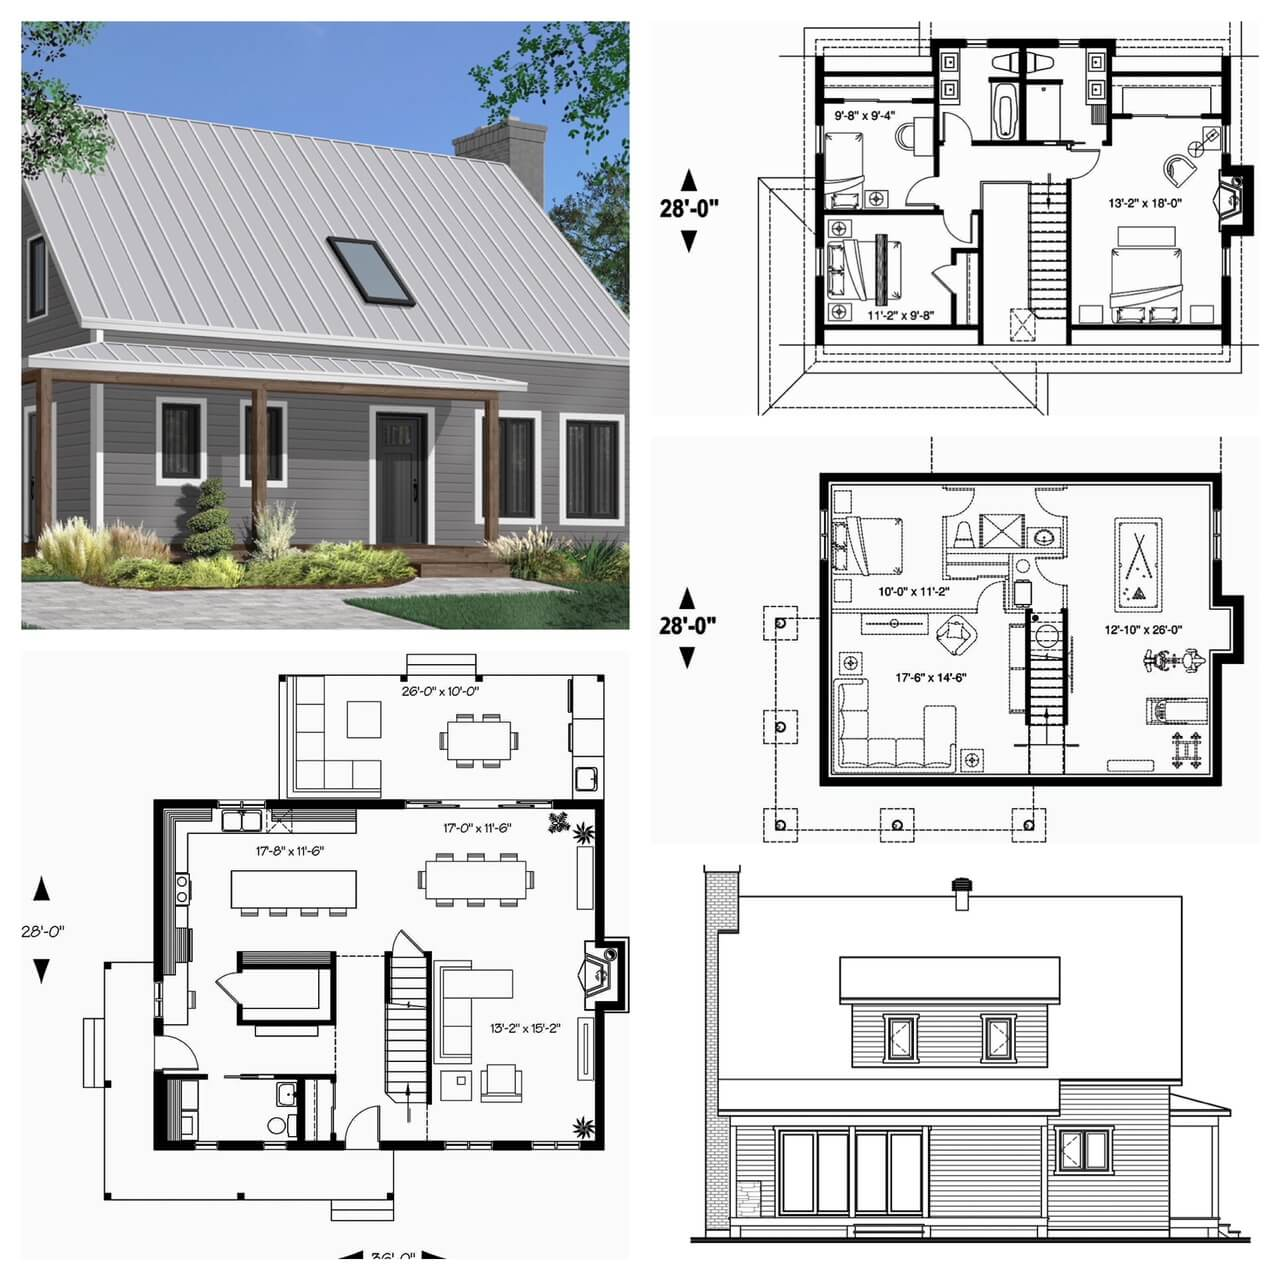 Modern Farmhouse Canadian House Plan with Exterior Views and Floor Plans